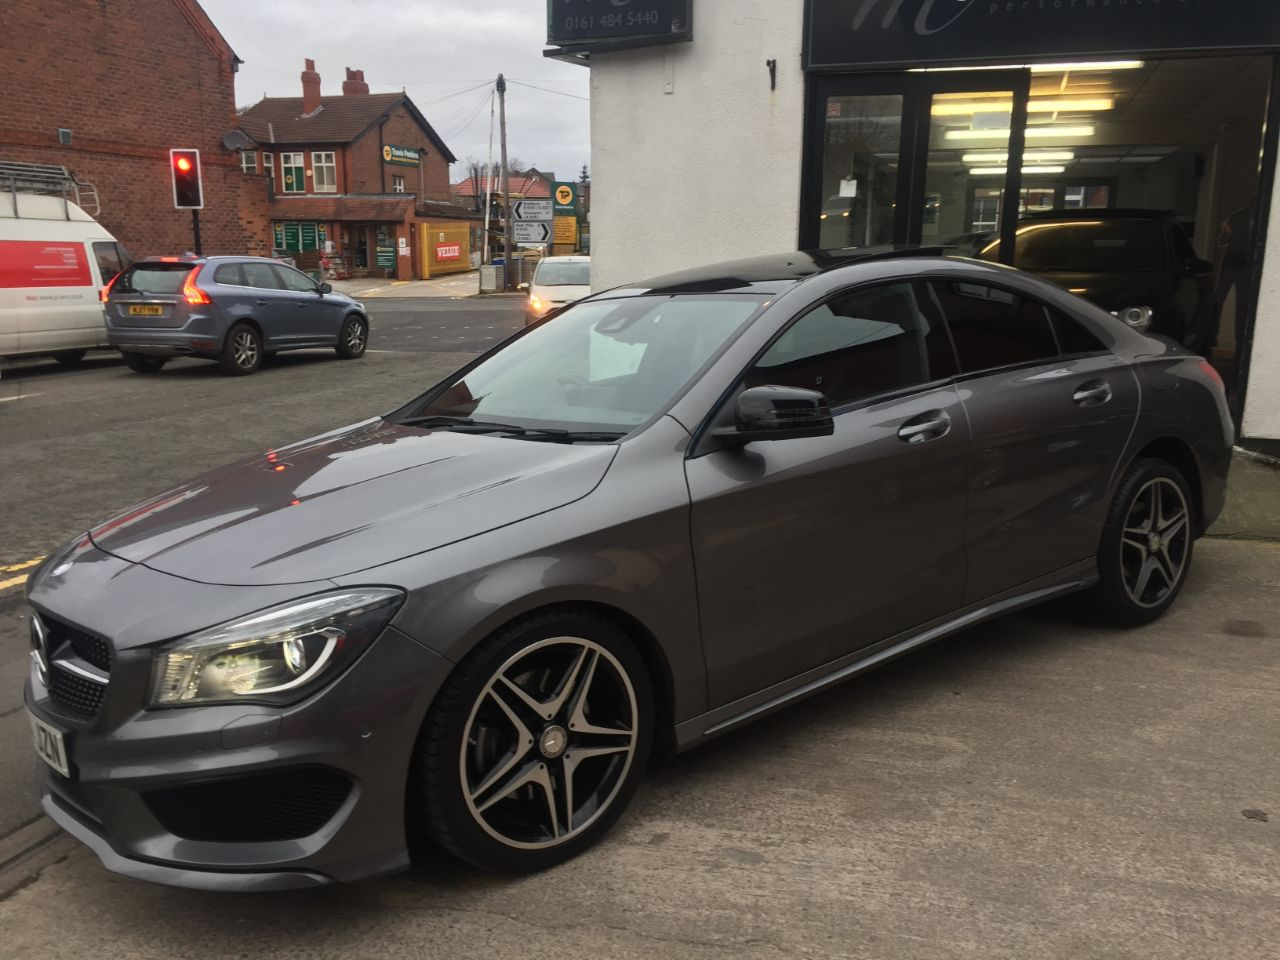 Mercedes-Benz Cla Class 2.0 CLA 250 AMG Sport 4Matic 4dr Tip Auto Saloon Petrol Grey at Motorhouse Cheshire Stockport